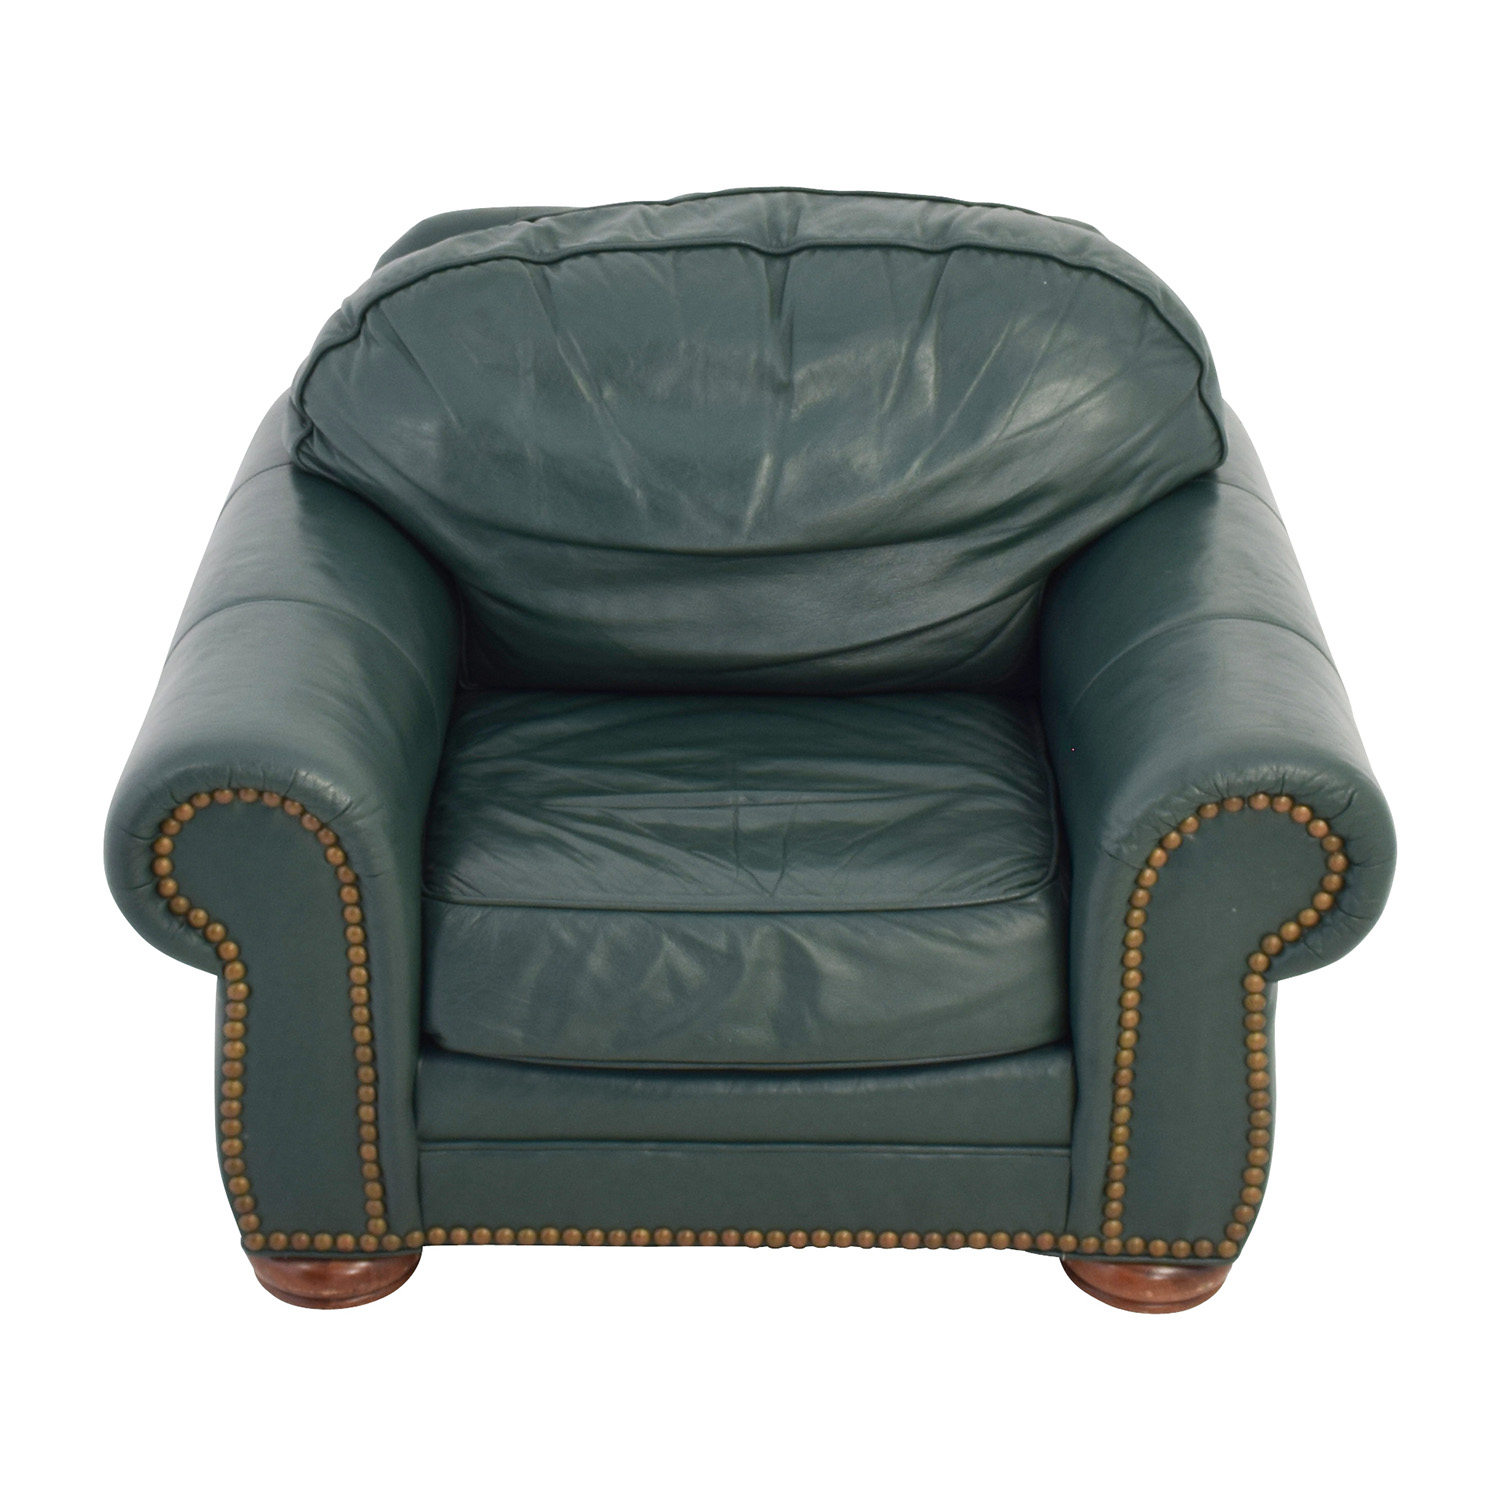 Merveilleux 65 Off Clayton Marcus Clayton Marcus Oversized Green Leather Chair Chairs